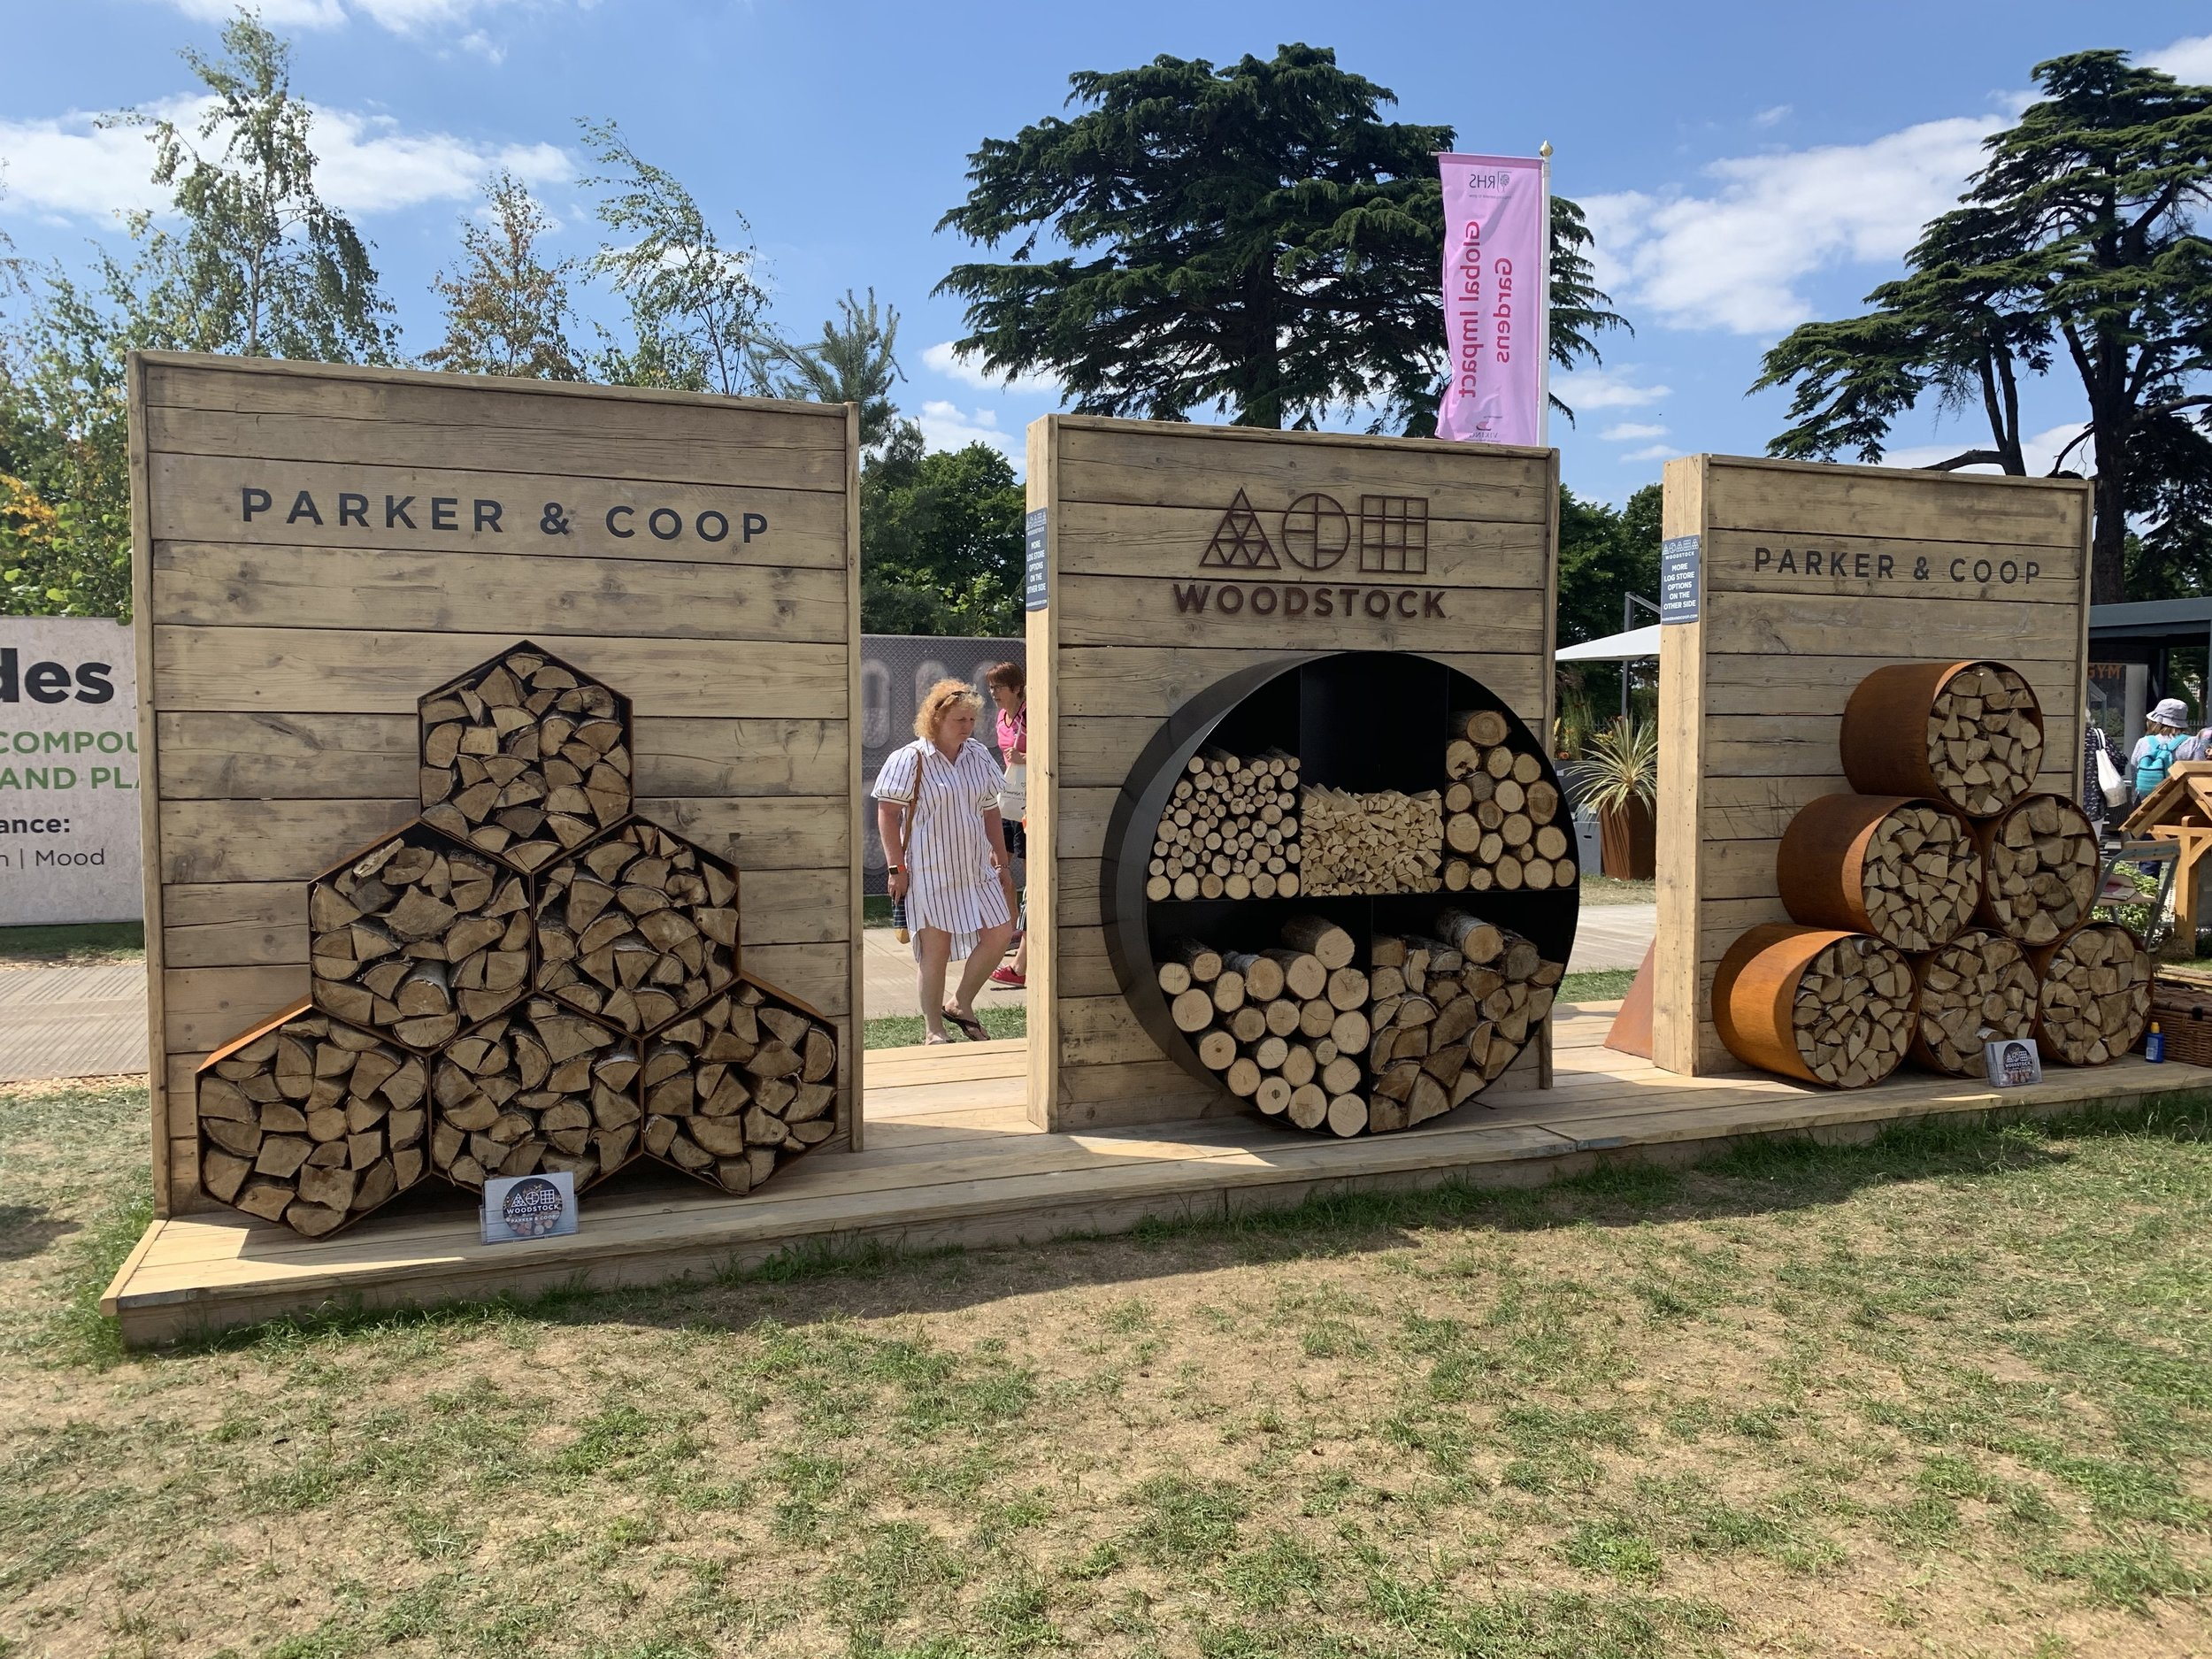 Hampton Court Palace Flower Show | Vanilla Rose Weddings Monthly Round Up